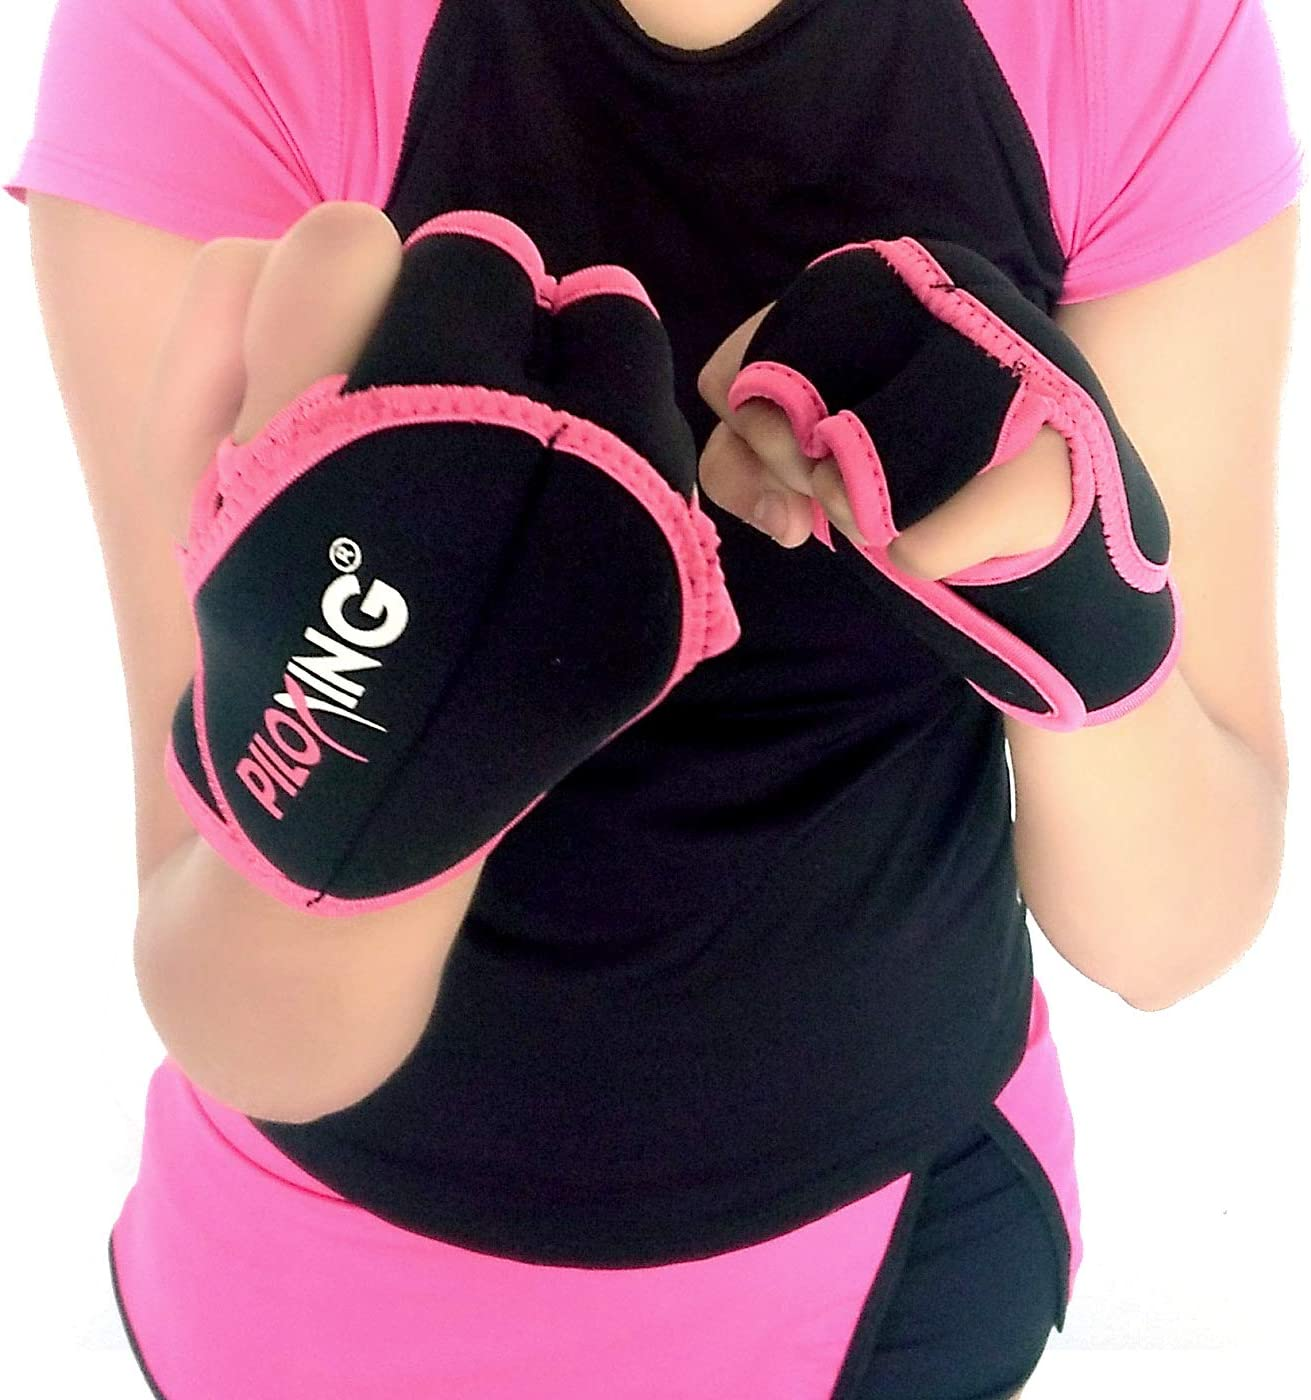 PILOXING 1//2 lb Weighted Gloves